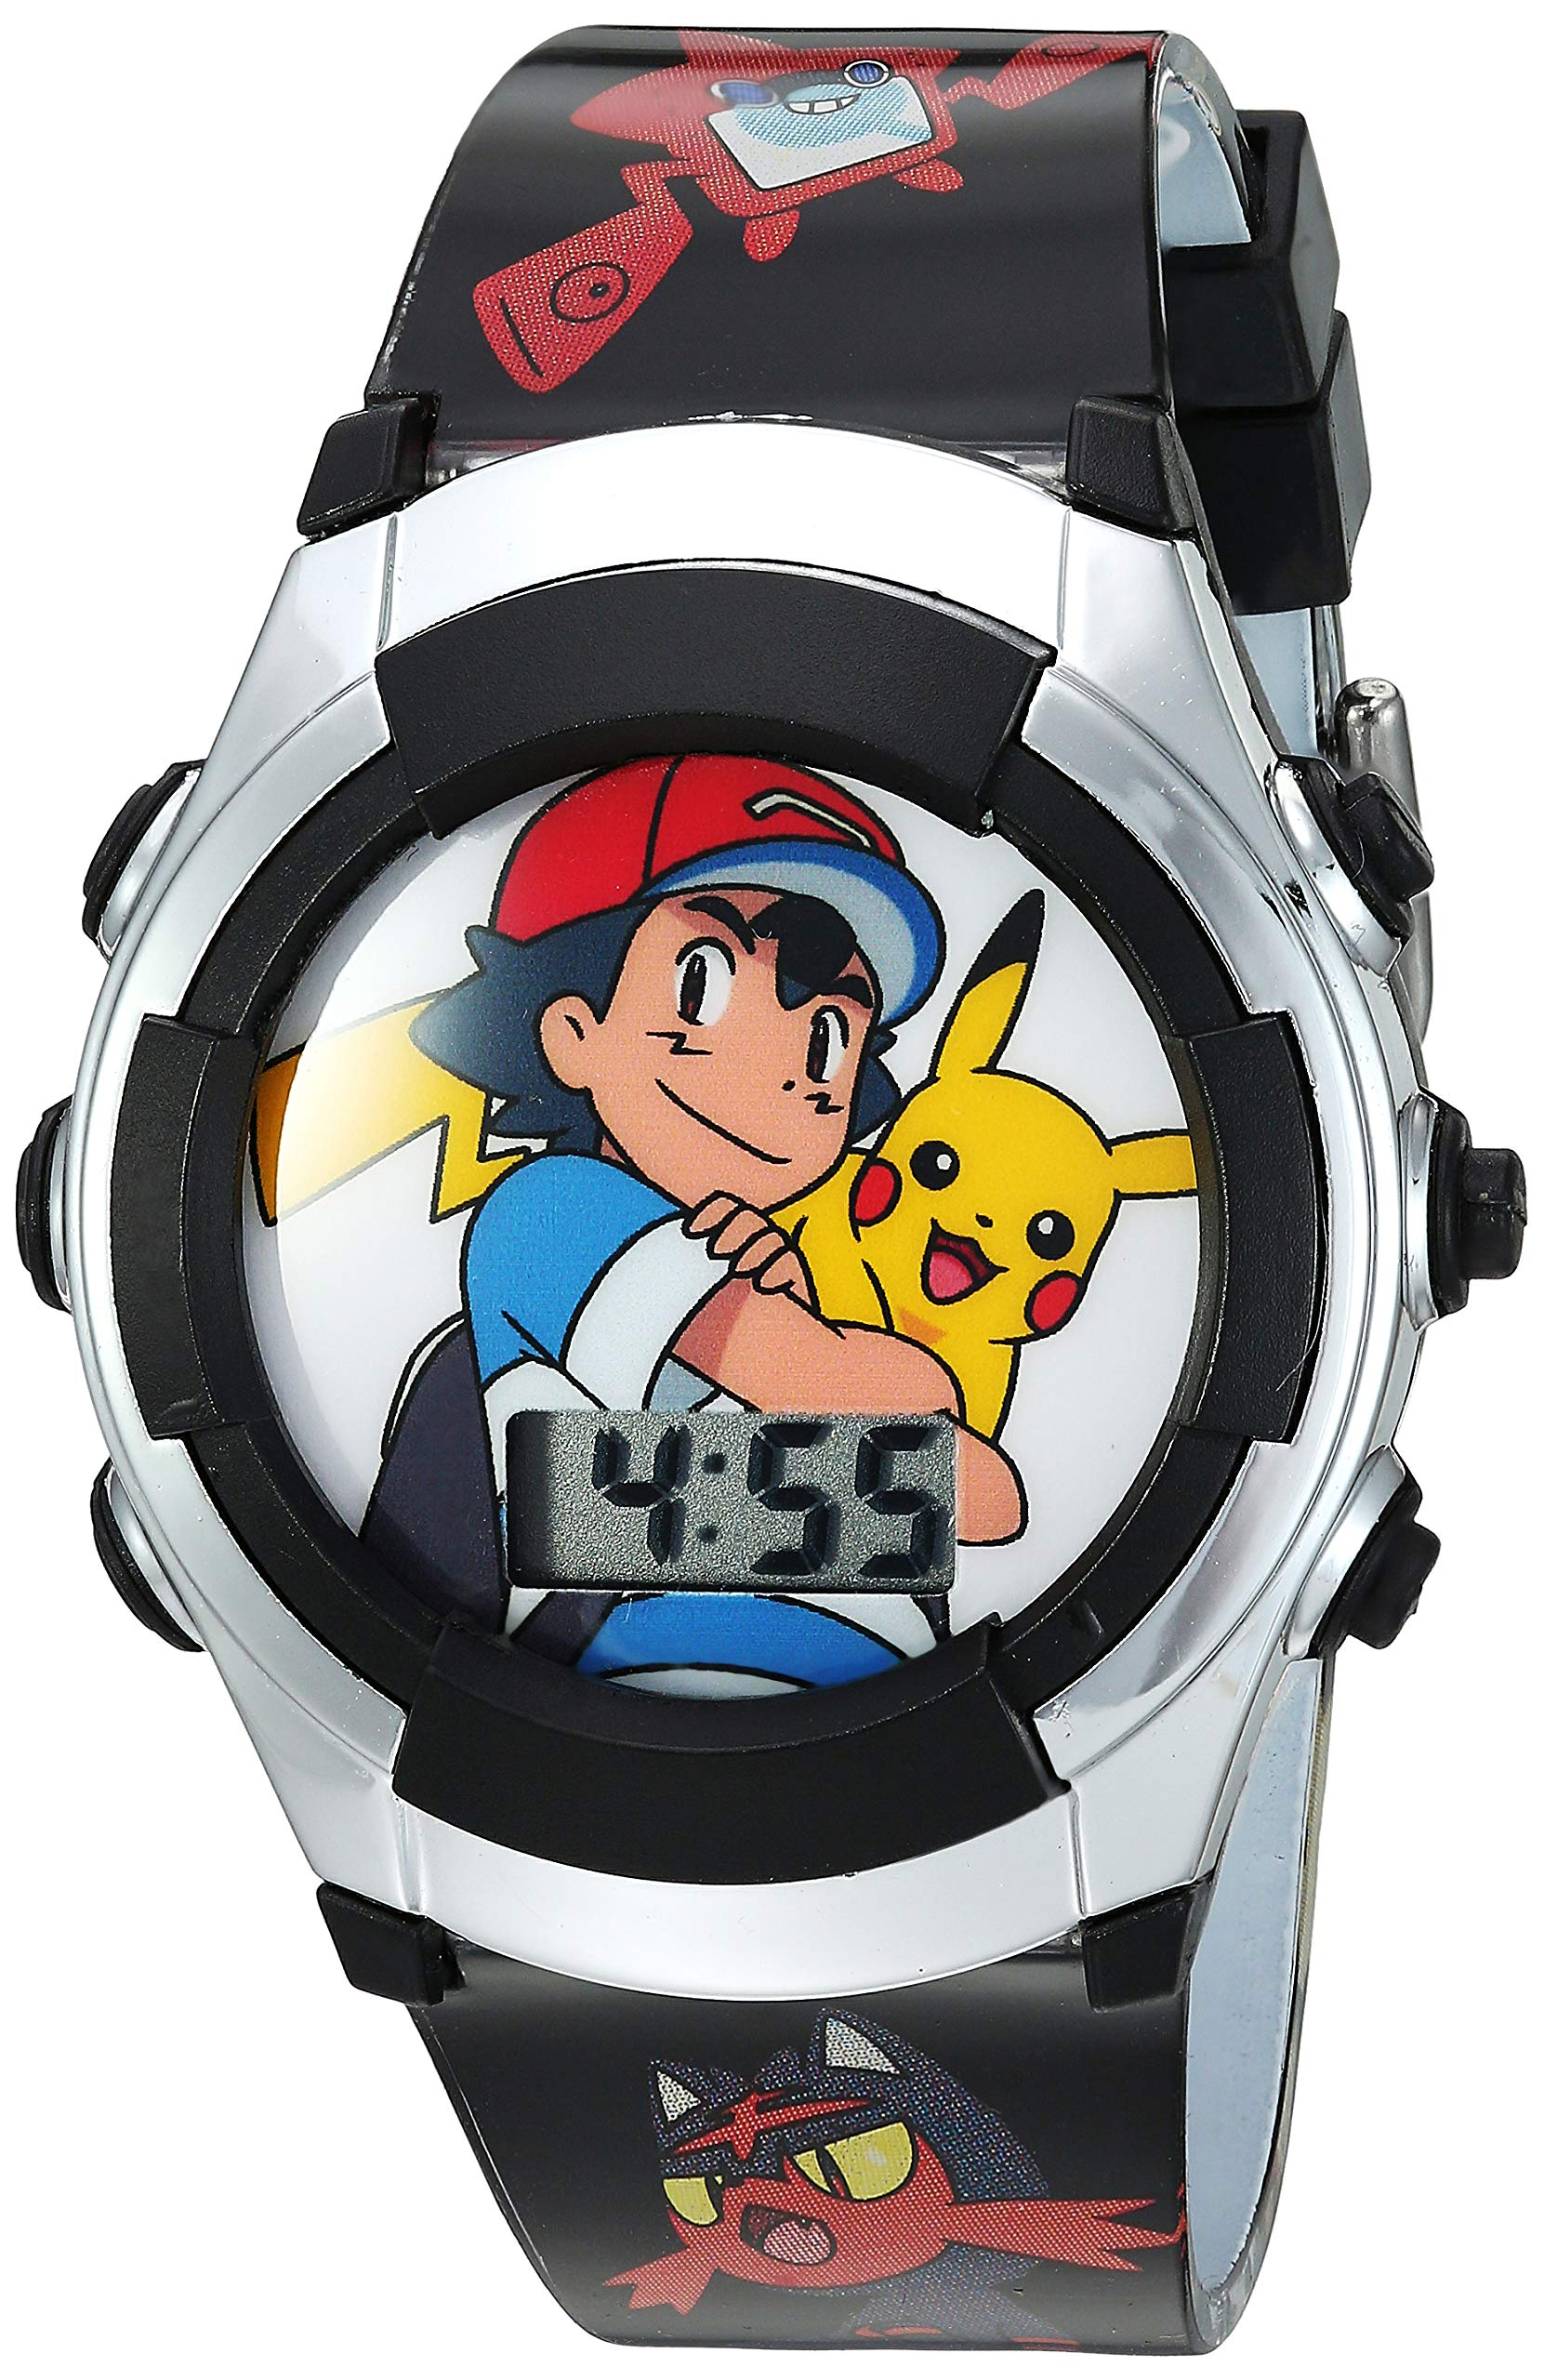 Pokémon Kids' Watch with Flashing LED Lights – Kids Digital Watch with Official Pokémon Characters on the Dial, Childrens Watch with Easy Buckle Strap, Kids Digital Watch, Safe for Children